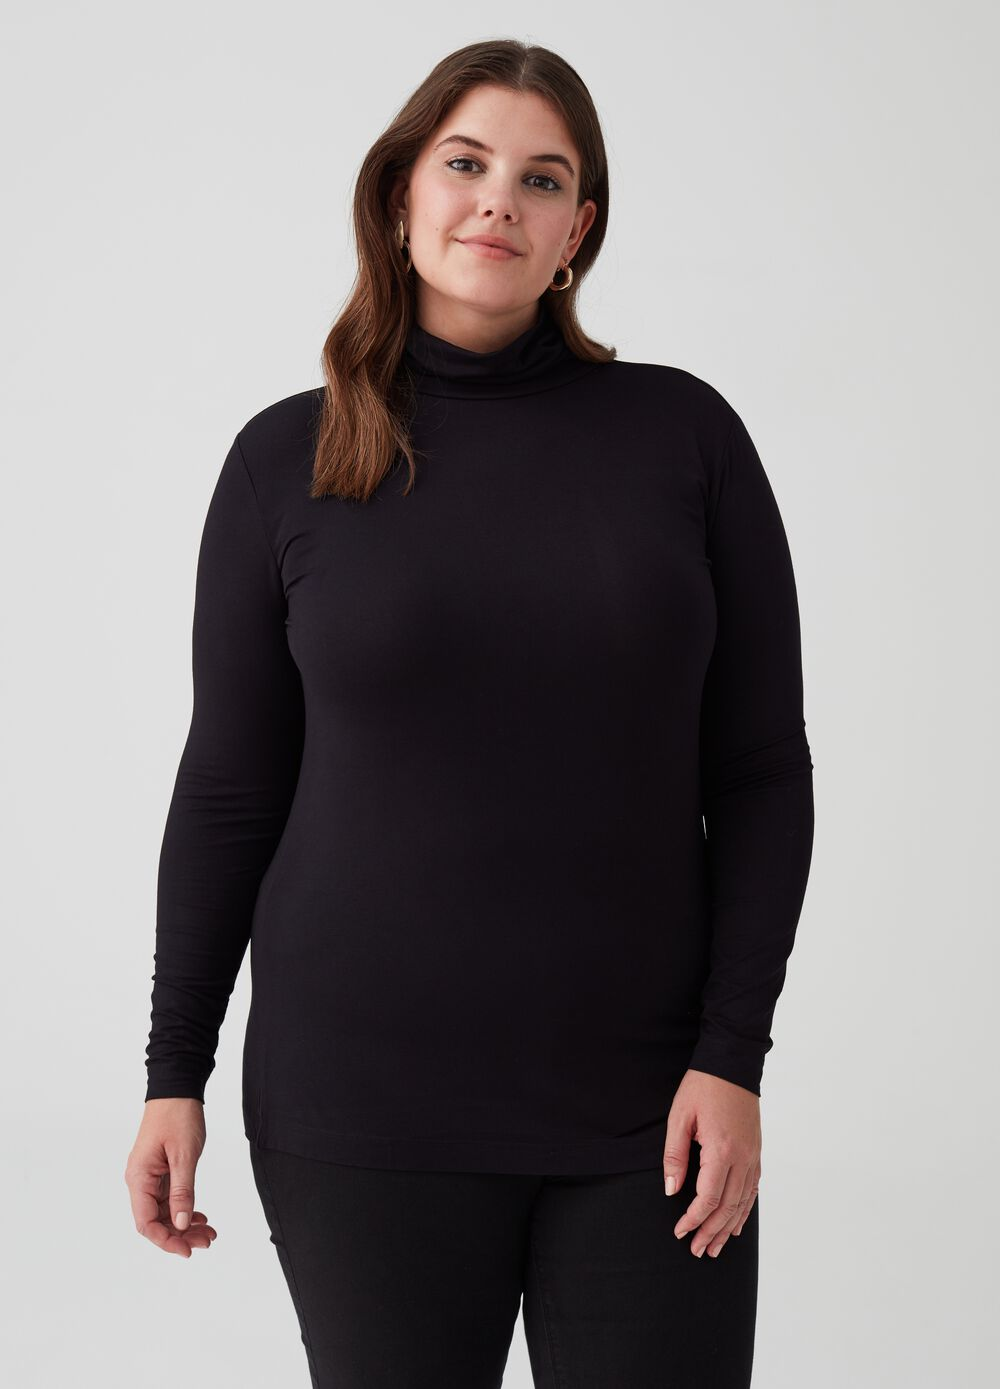 Curvy T-shirt with long sleeves and high neck